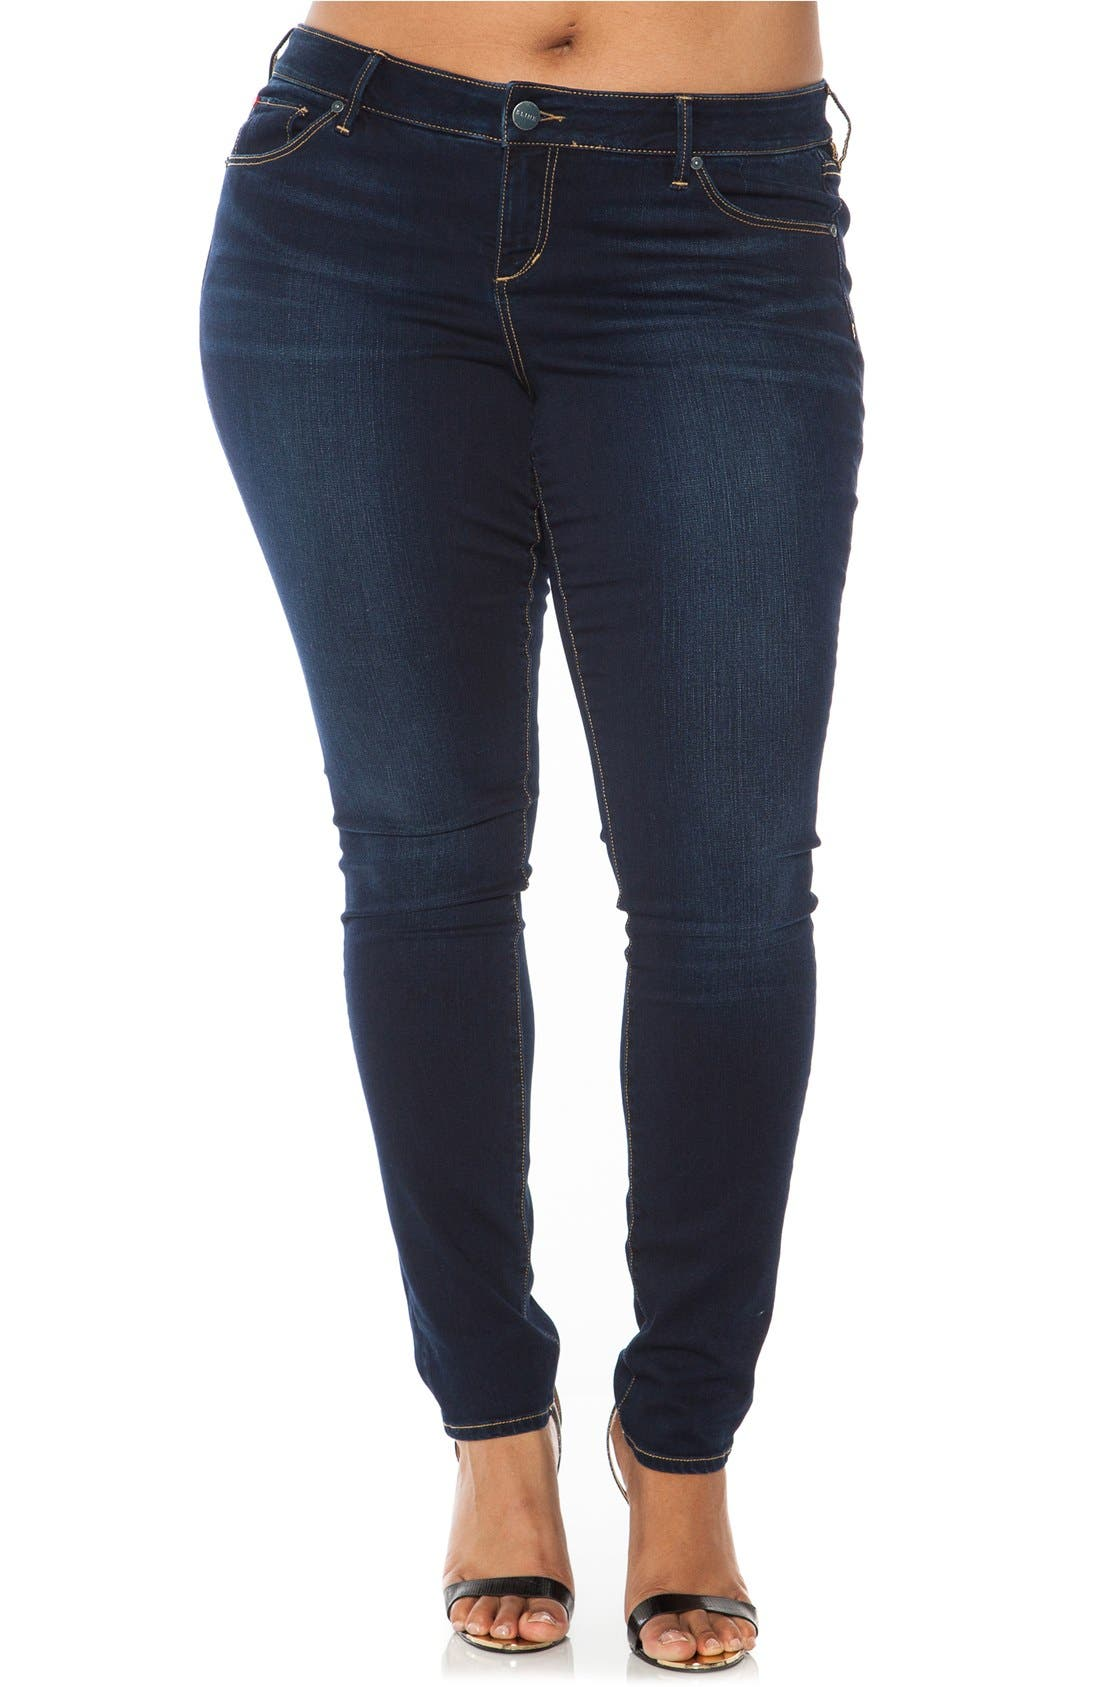 'The Skinny' Stretch Denim Jeans,                             Main thumbnail 1, color,                             Amber